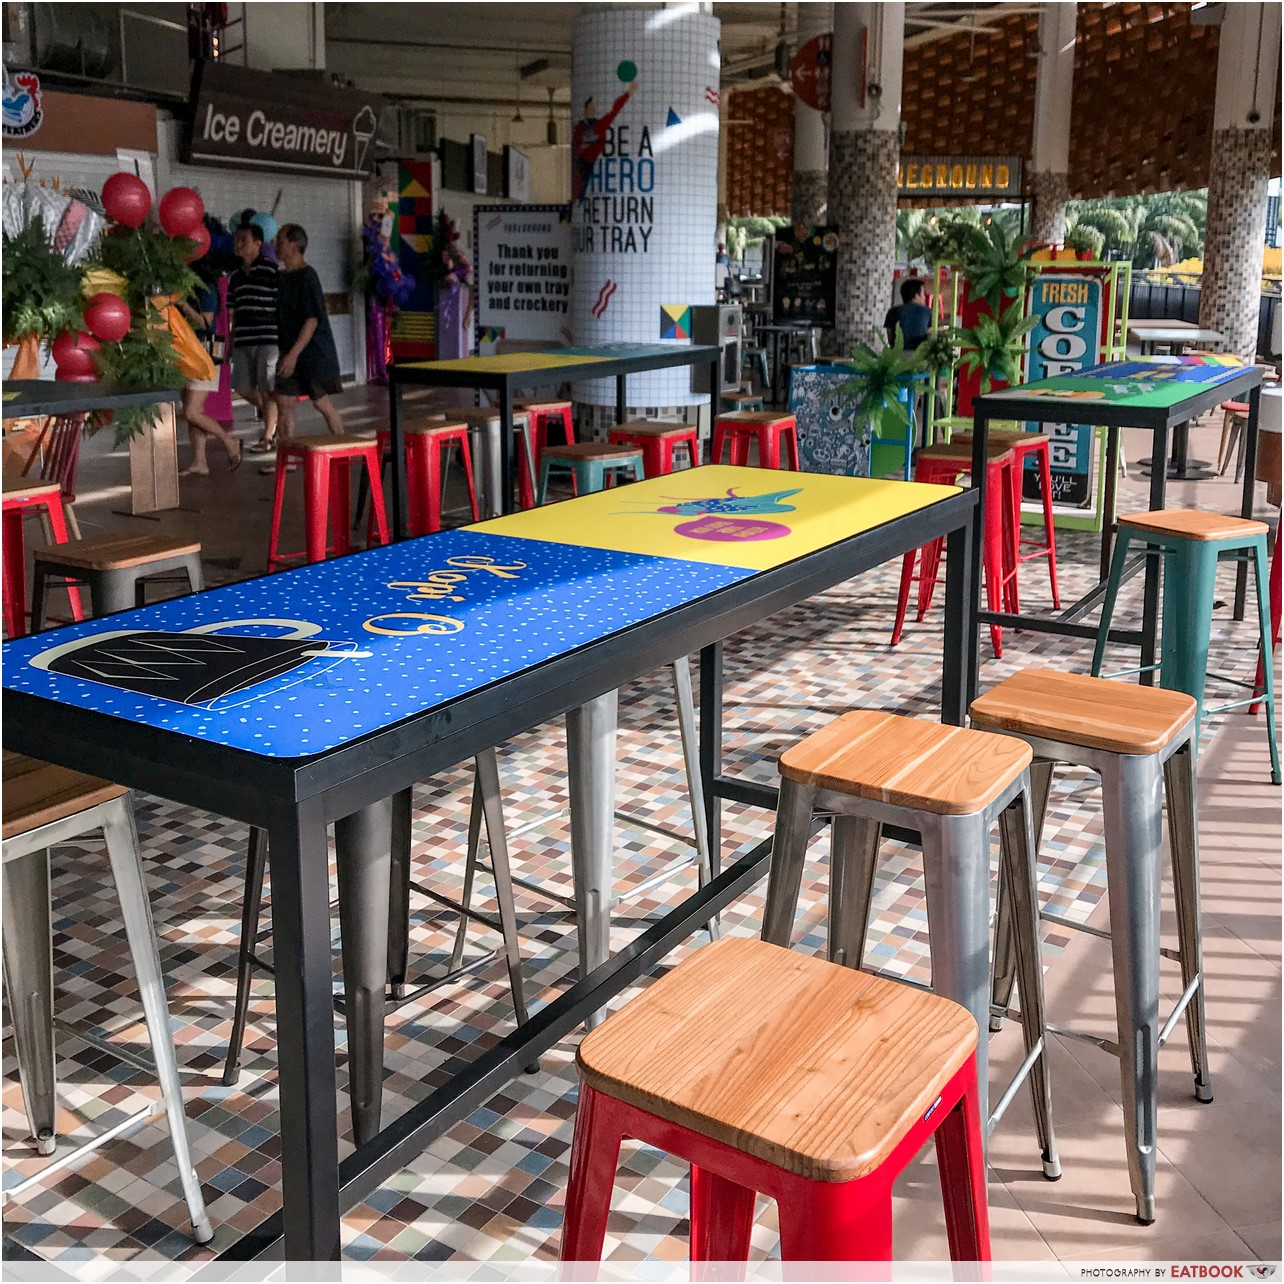 hipster hawker centres - fareground